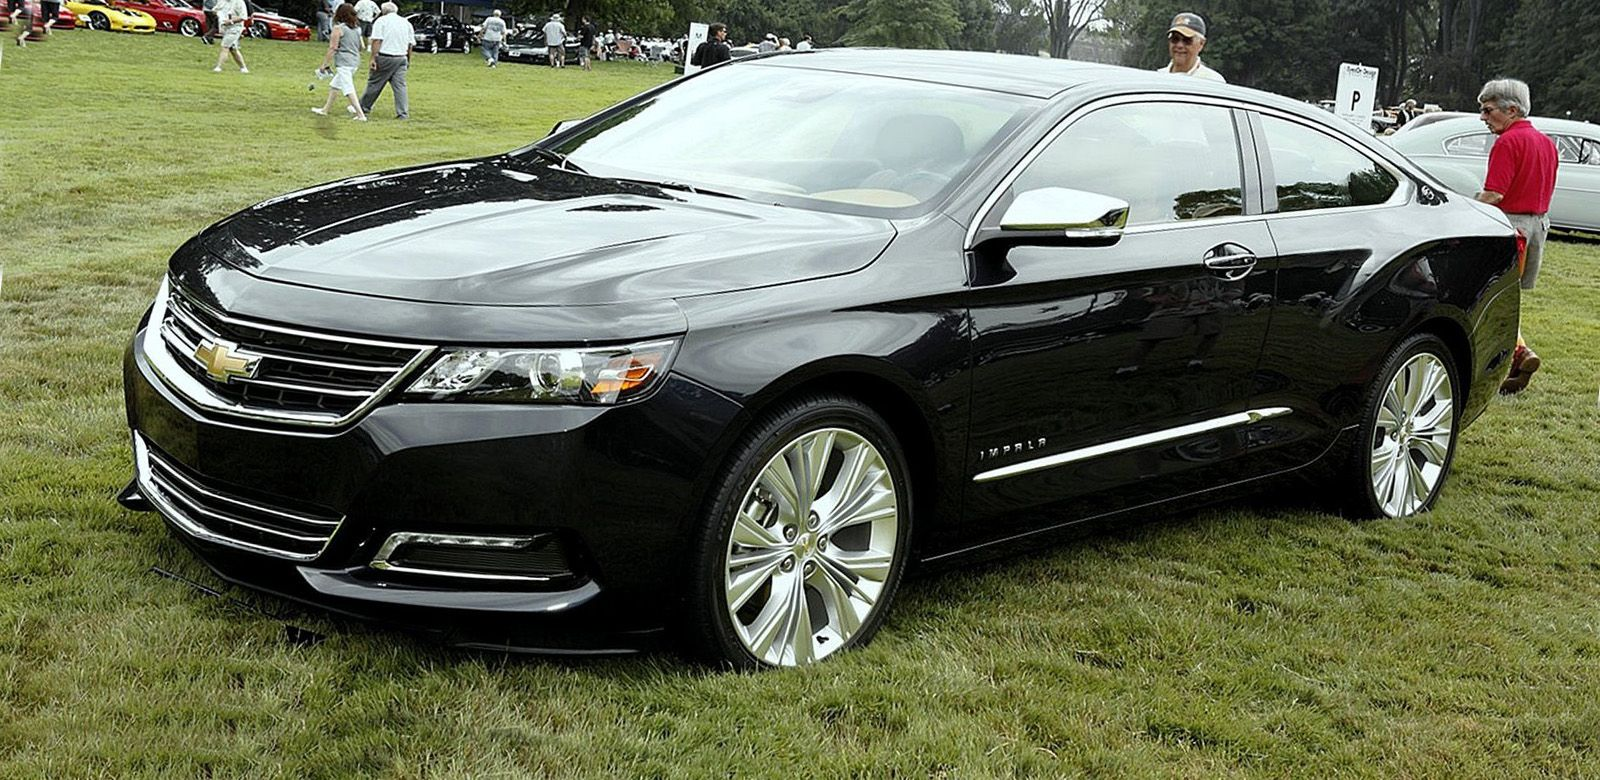 2015 chevy impala ss price and release date